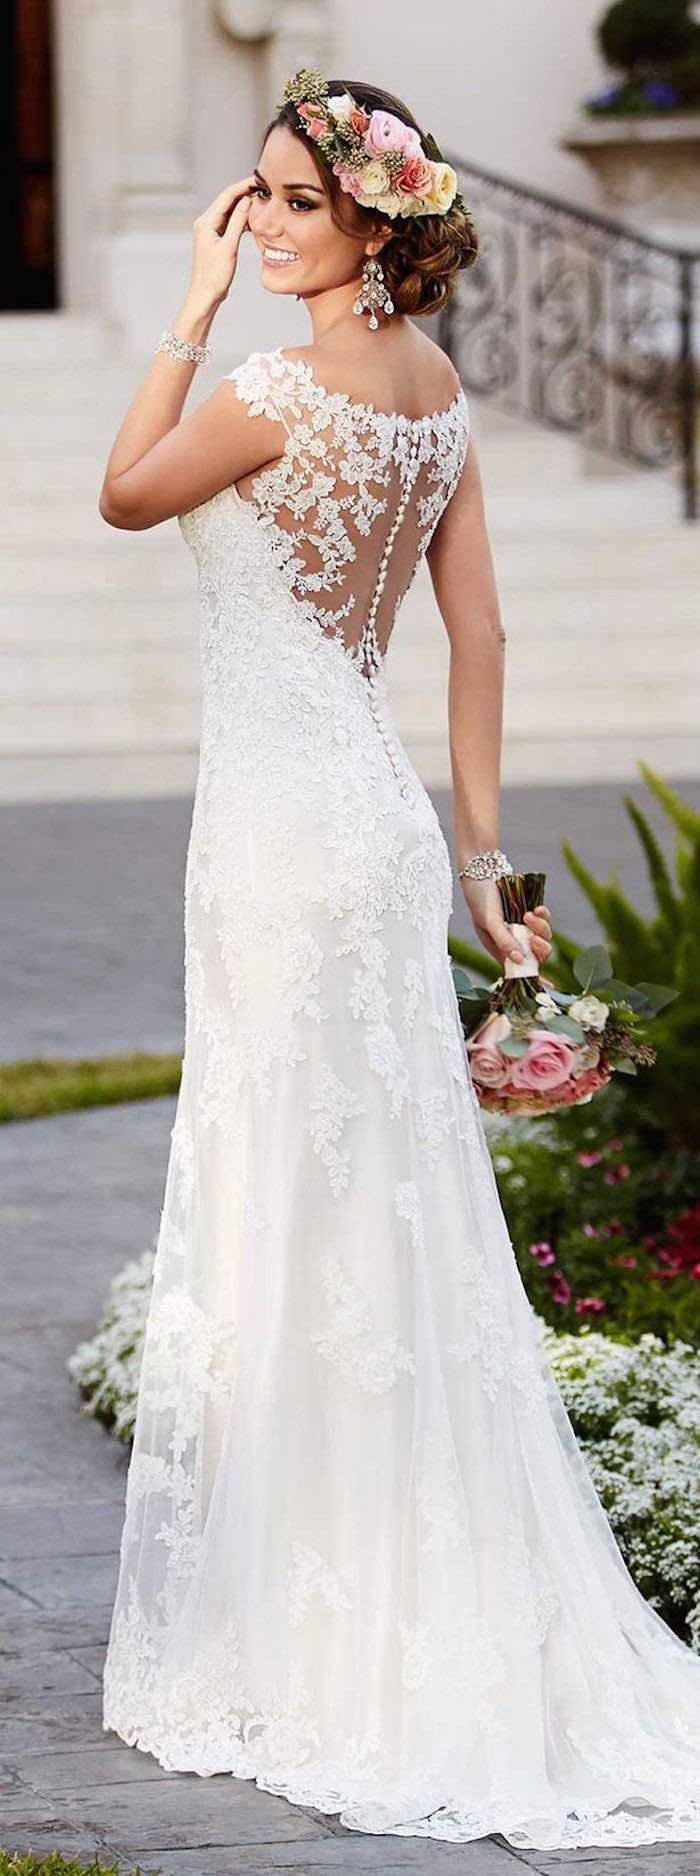 best i will i did images on pinterest casamento gown